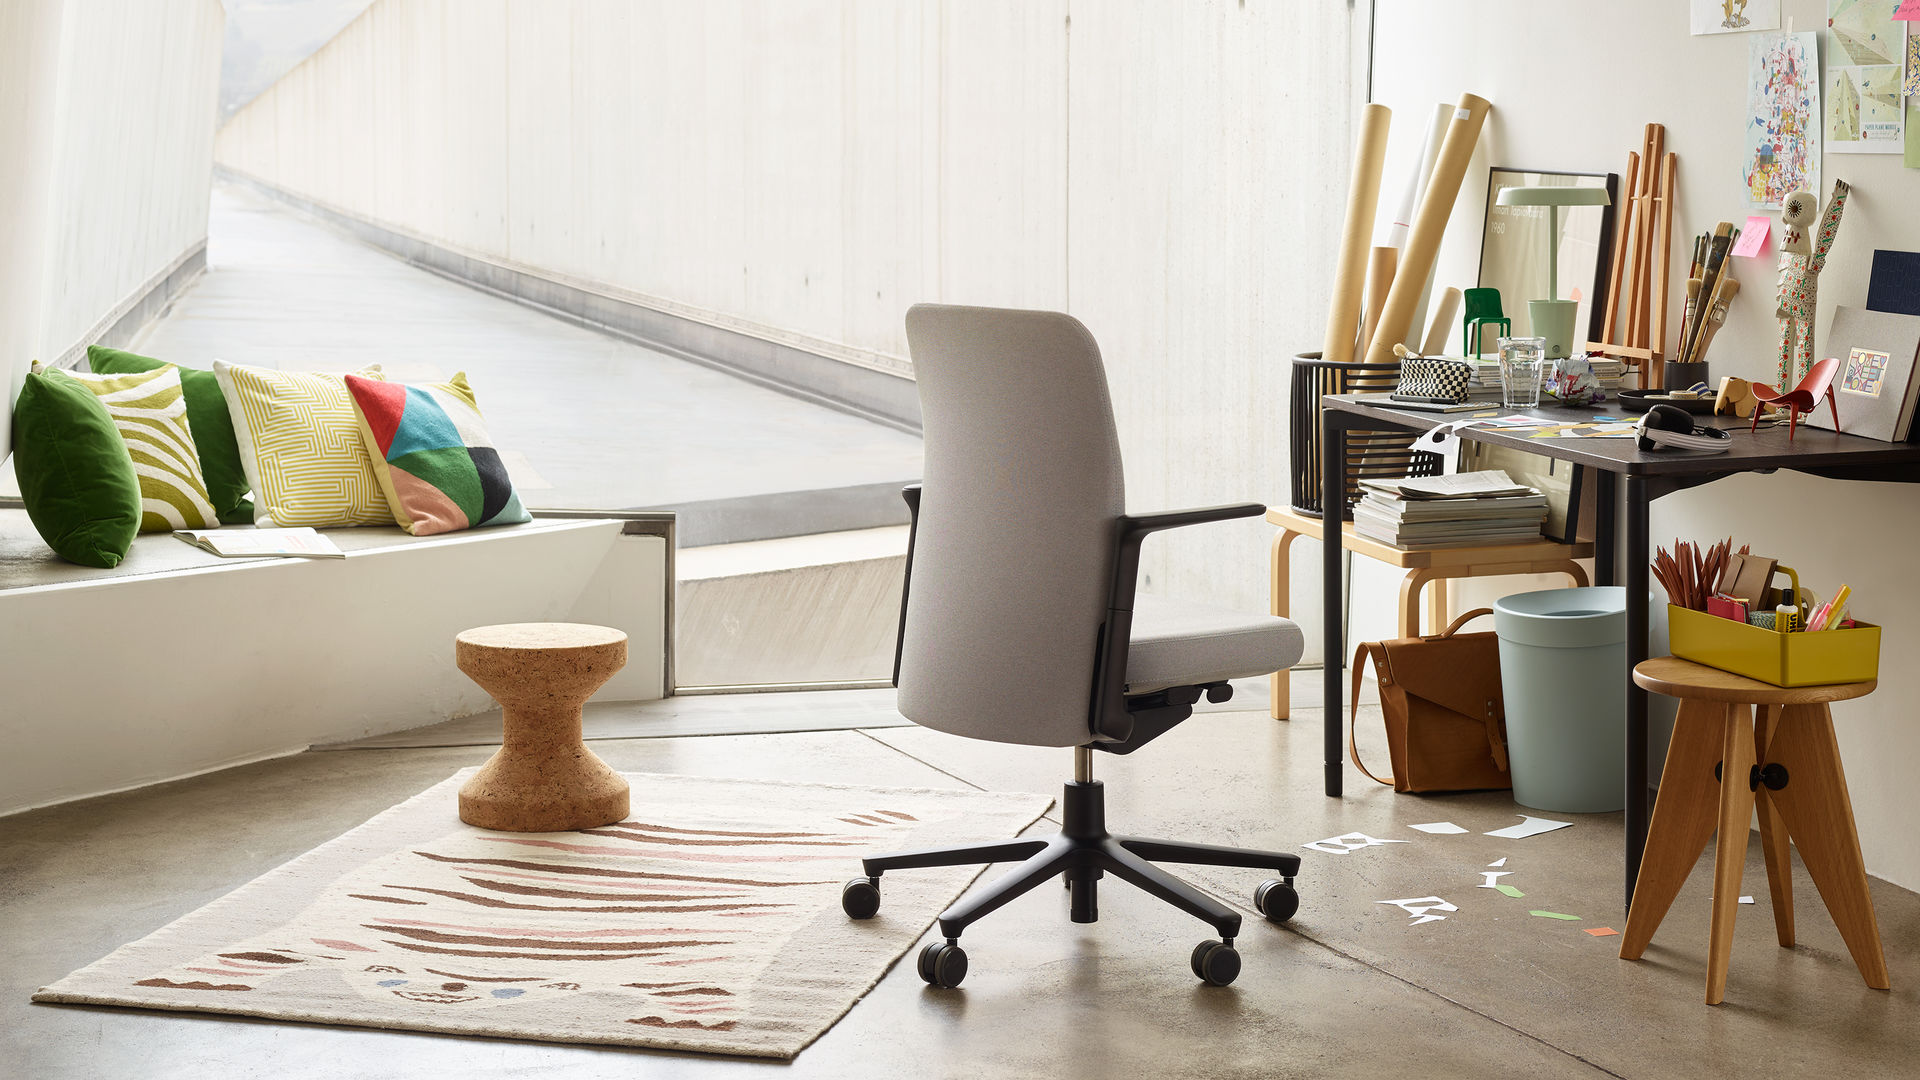 Pacific Chair Map Table Cork Stool Tabouret Solvey Happy Bin Maze O-Tidy_web_16-9